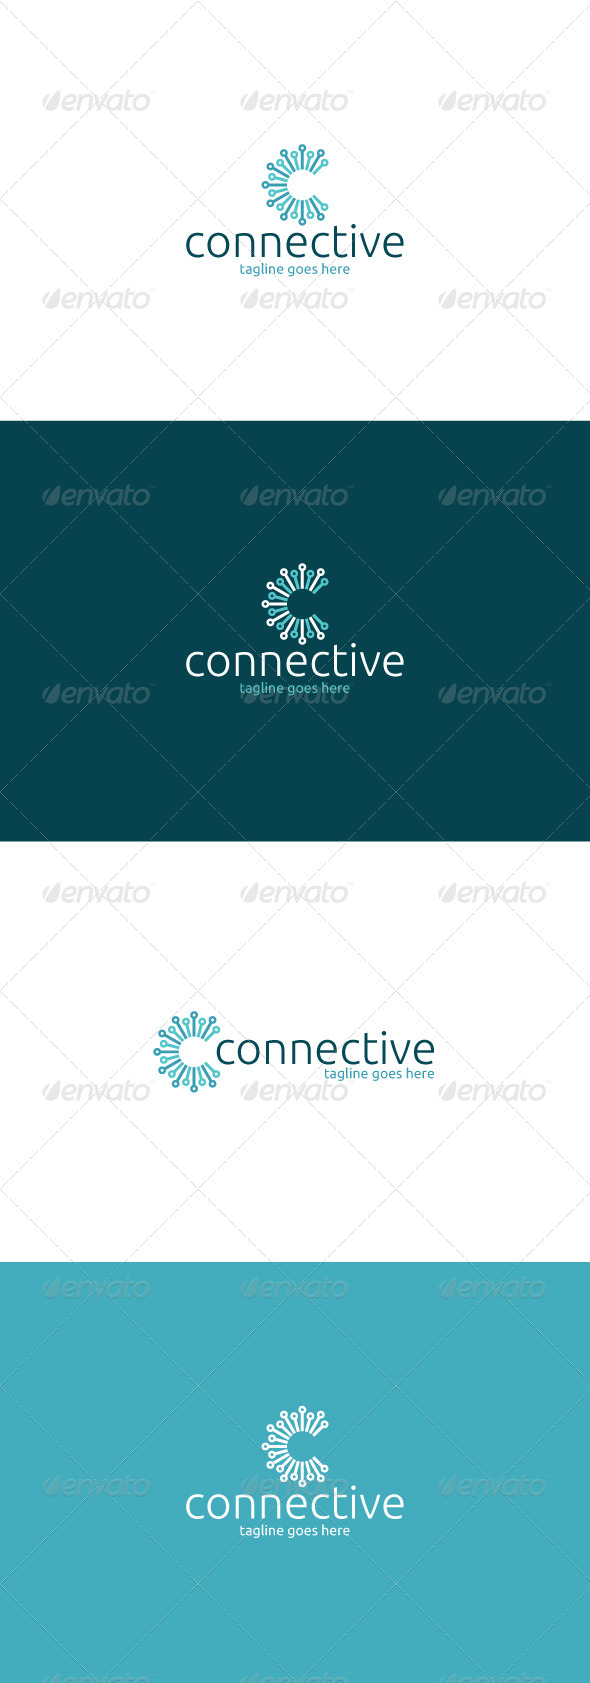 GraphicRiver Connective Logo Letter C 8324788